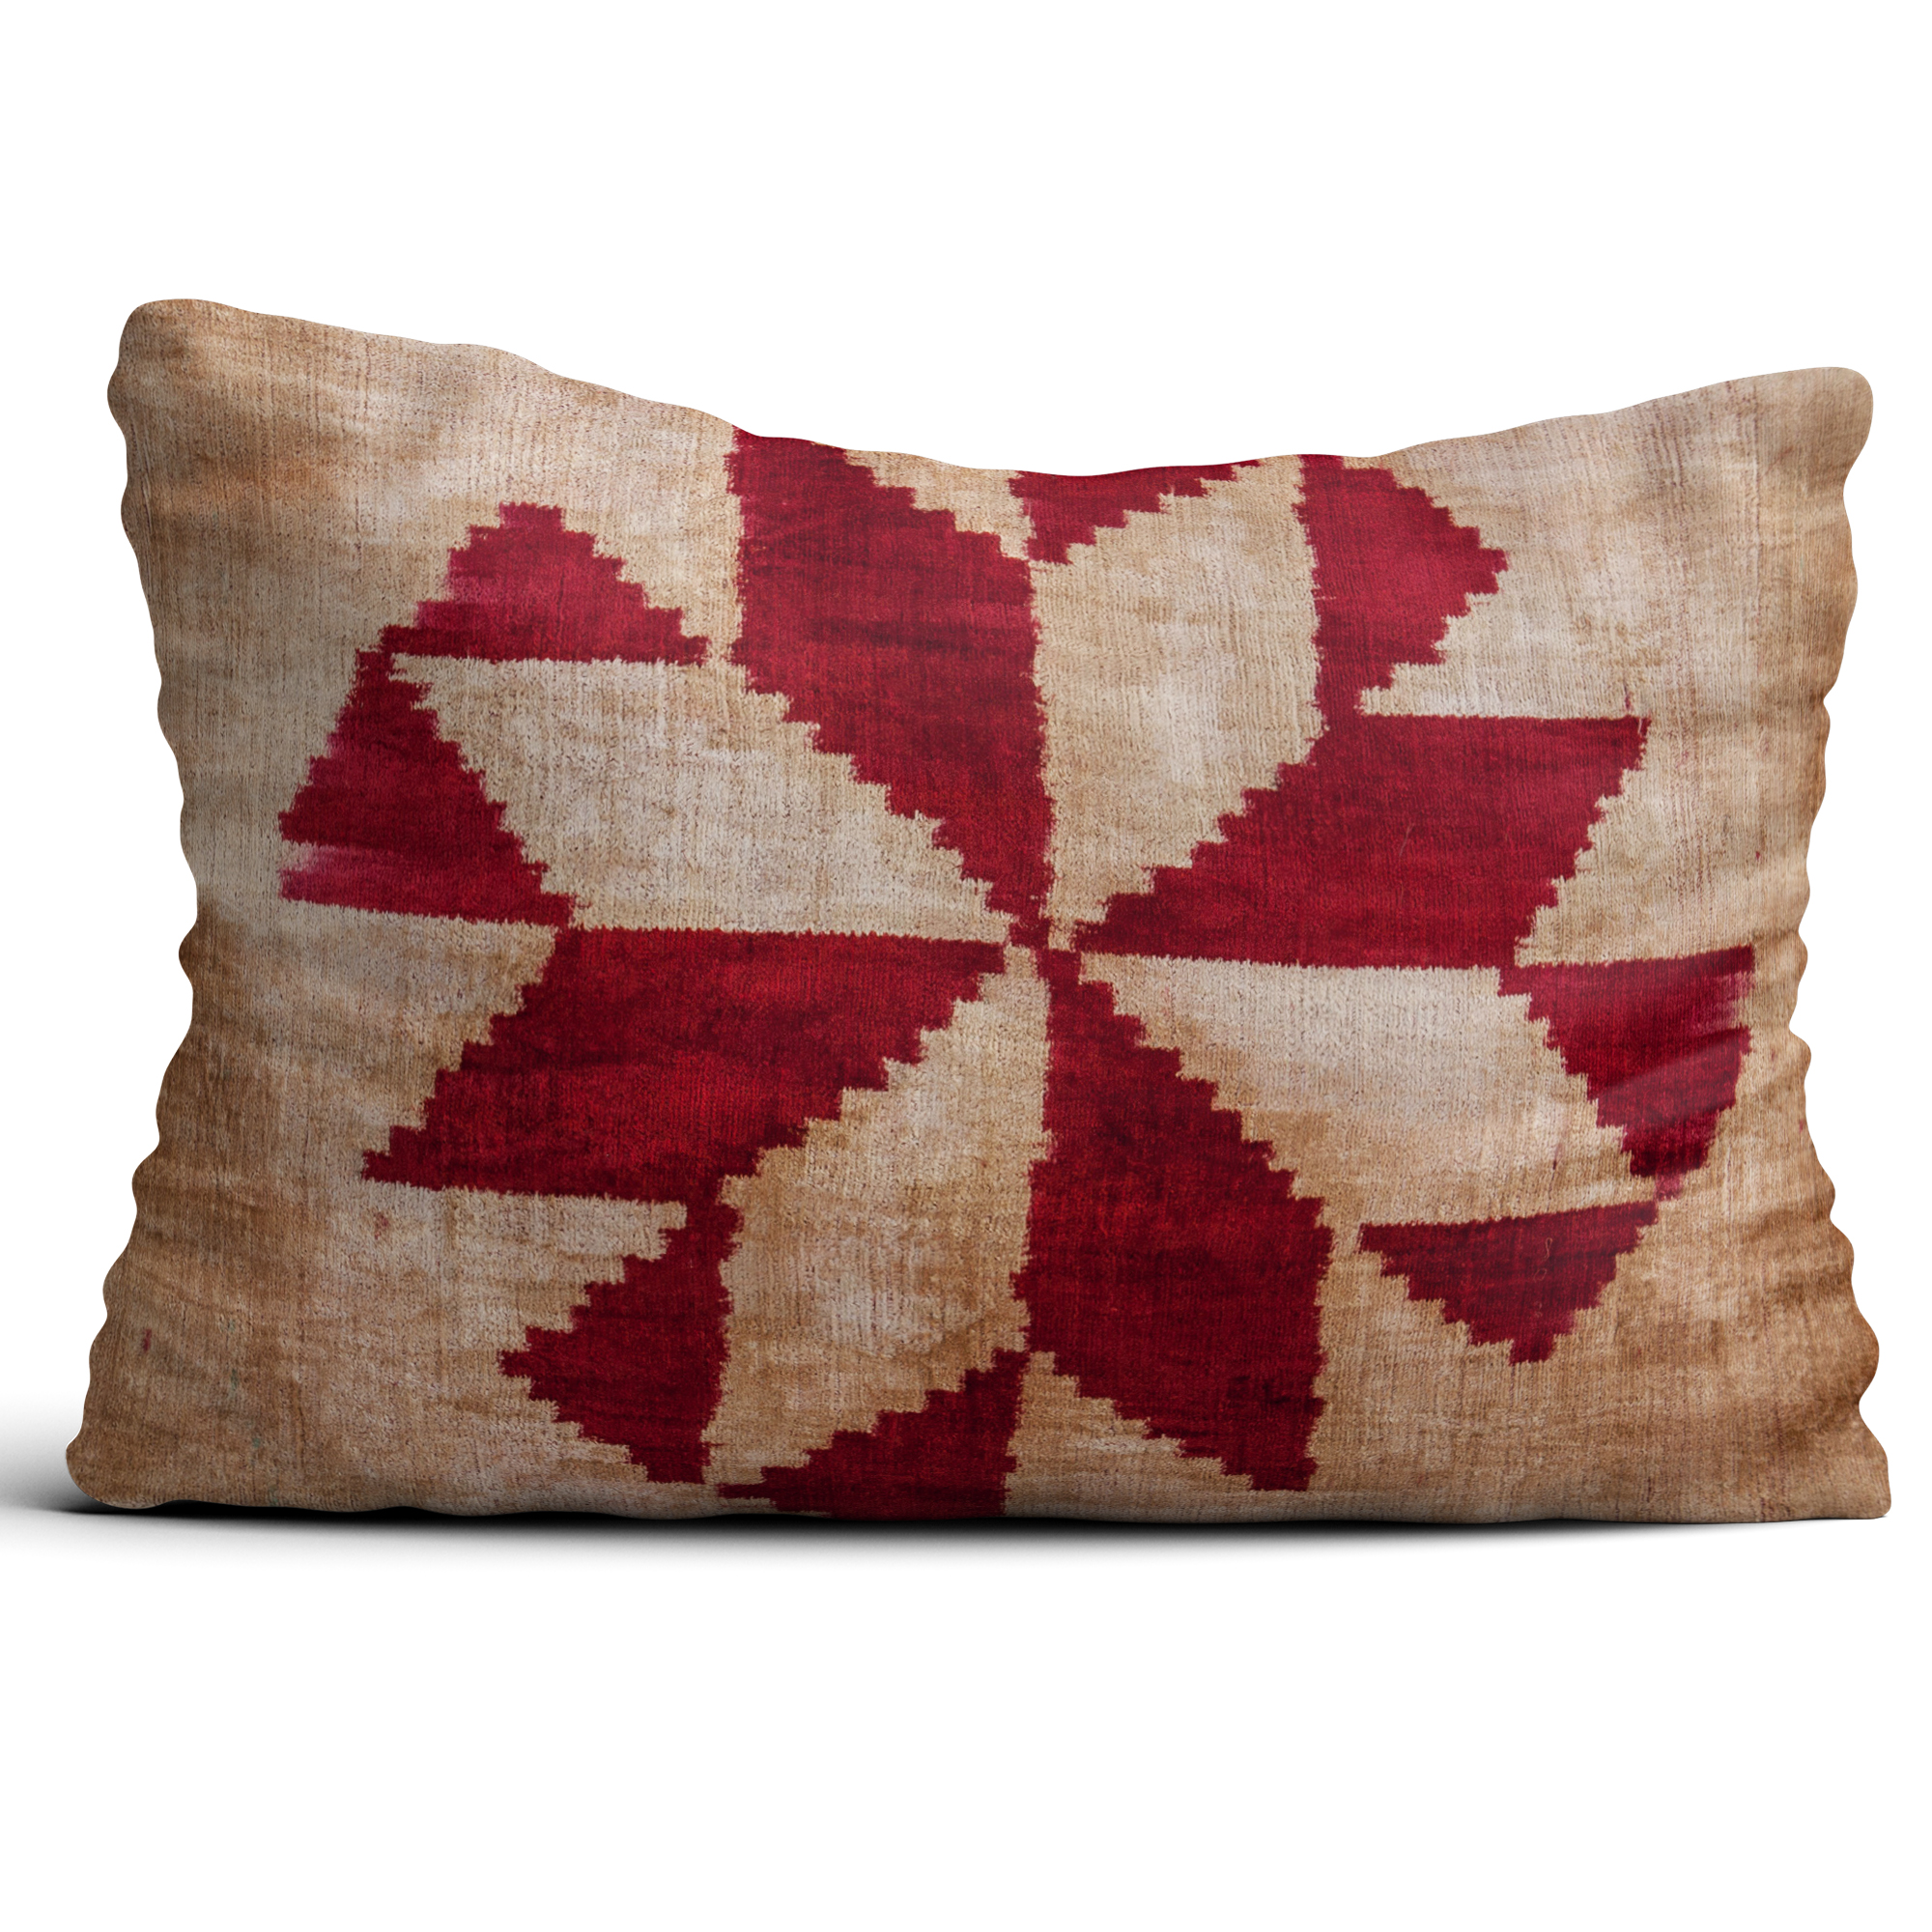 2636-silk-velvet-ikat-pillow